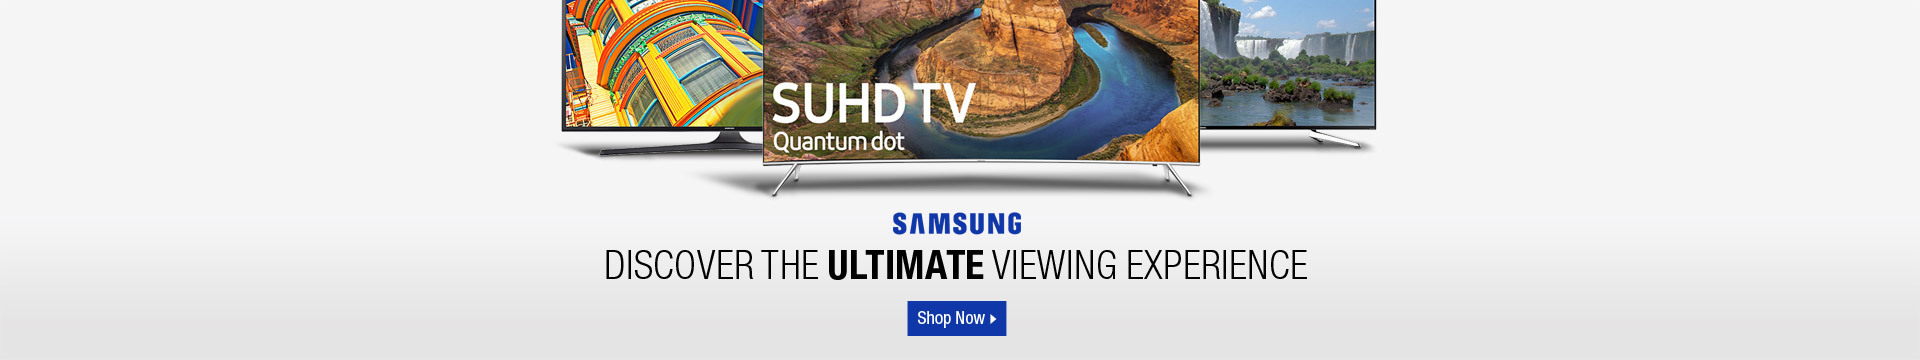 Discover the ultimate viewing experience